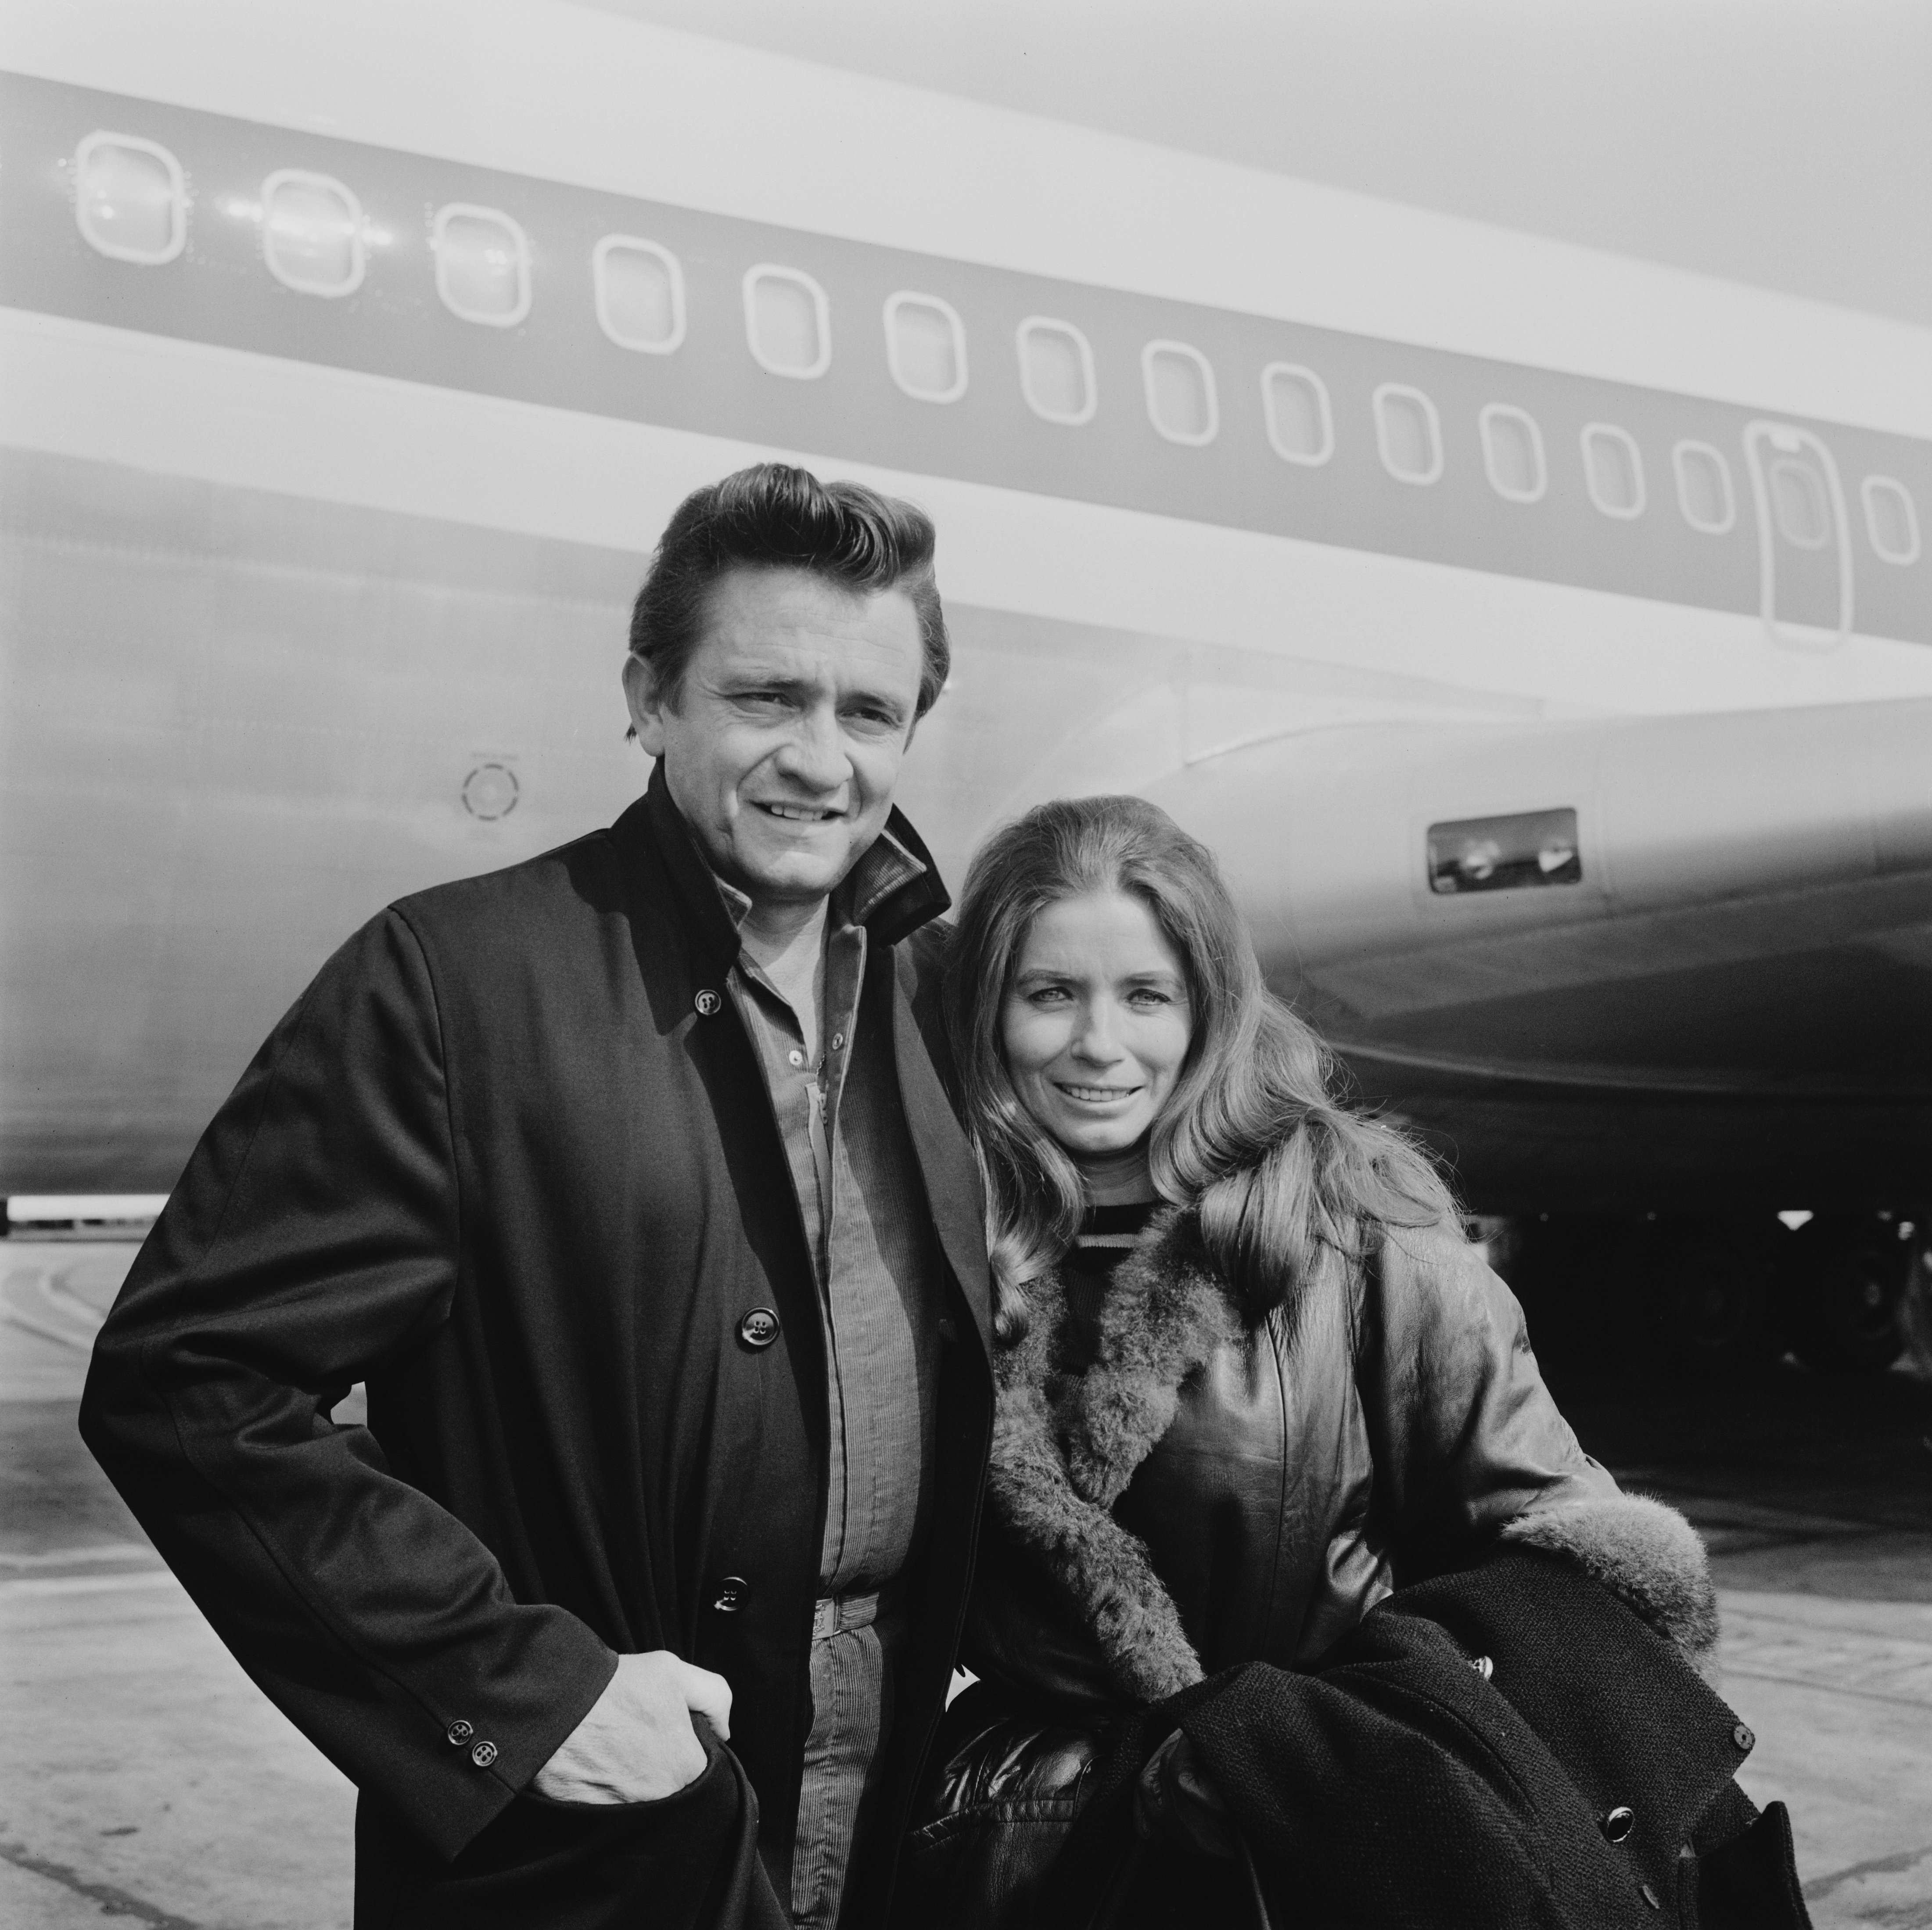 Johnny Cash and June Carter Cash pose outside of an airplane | Photo: Getty Images